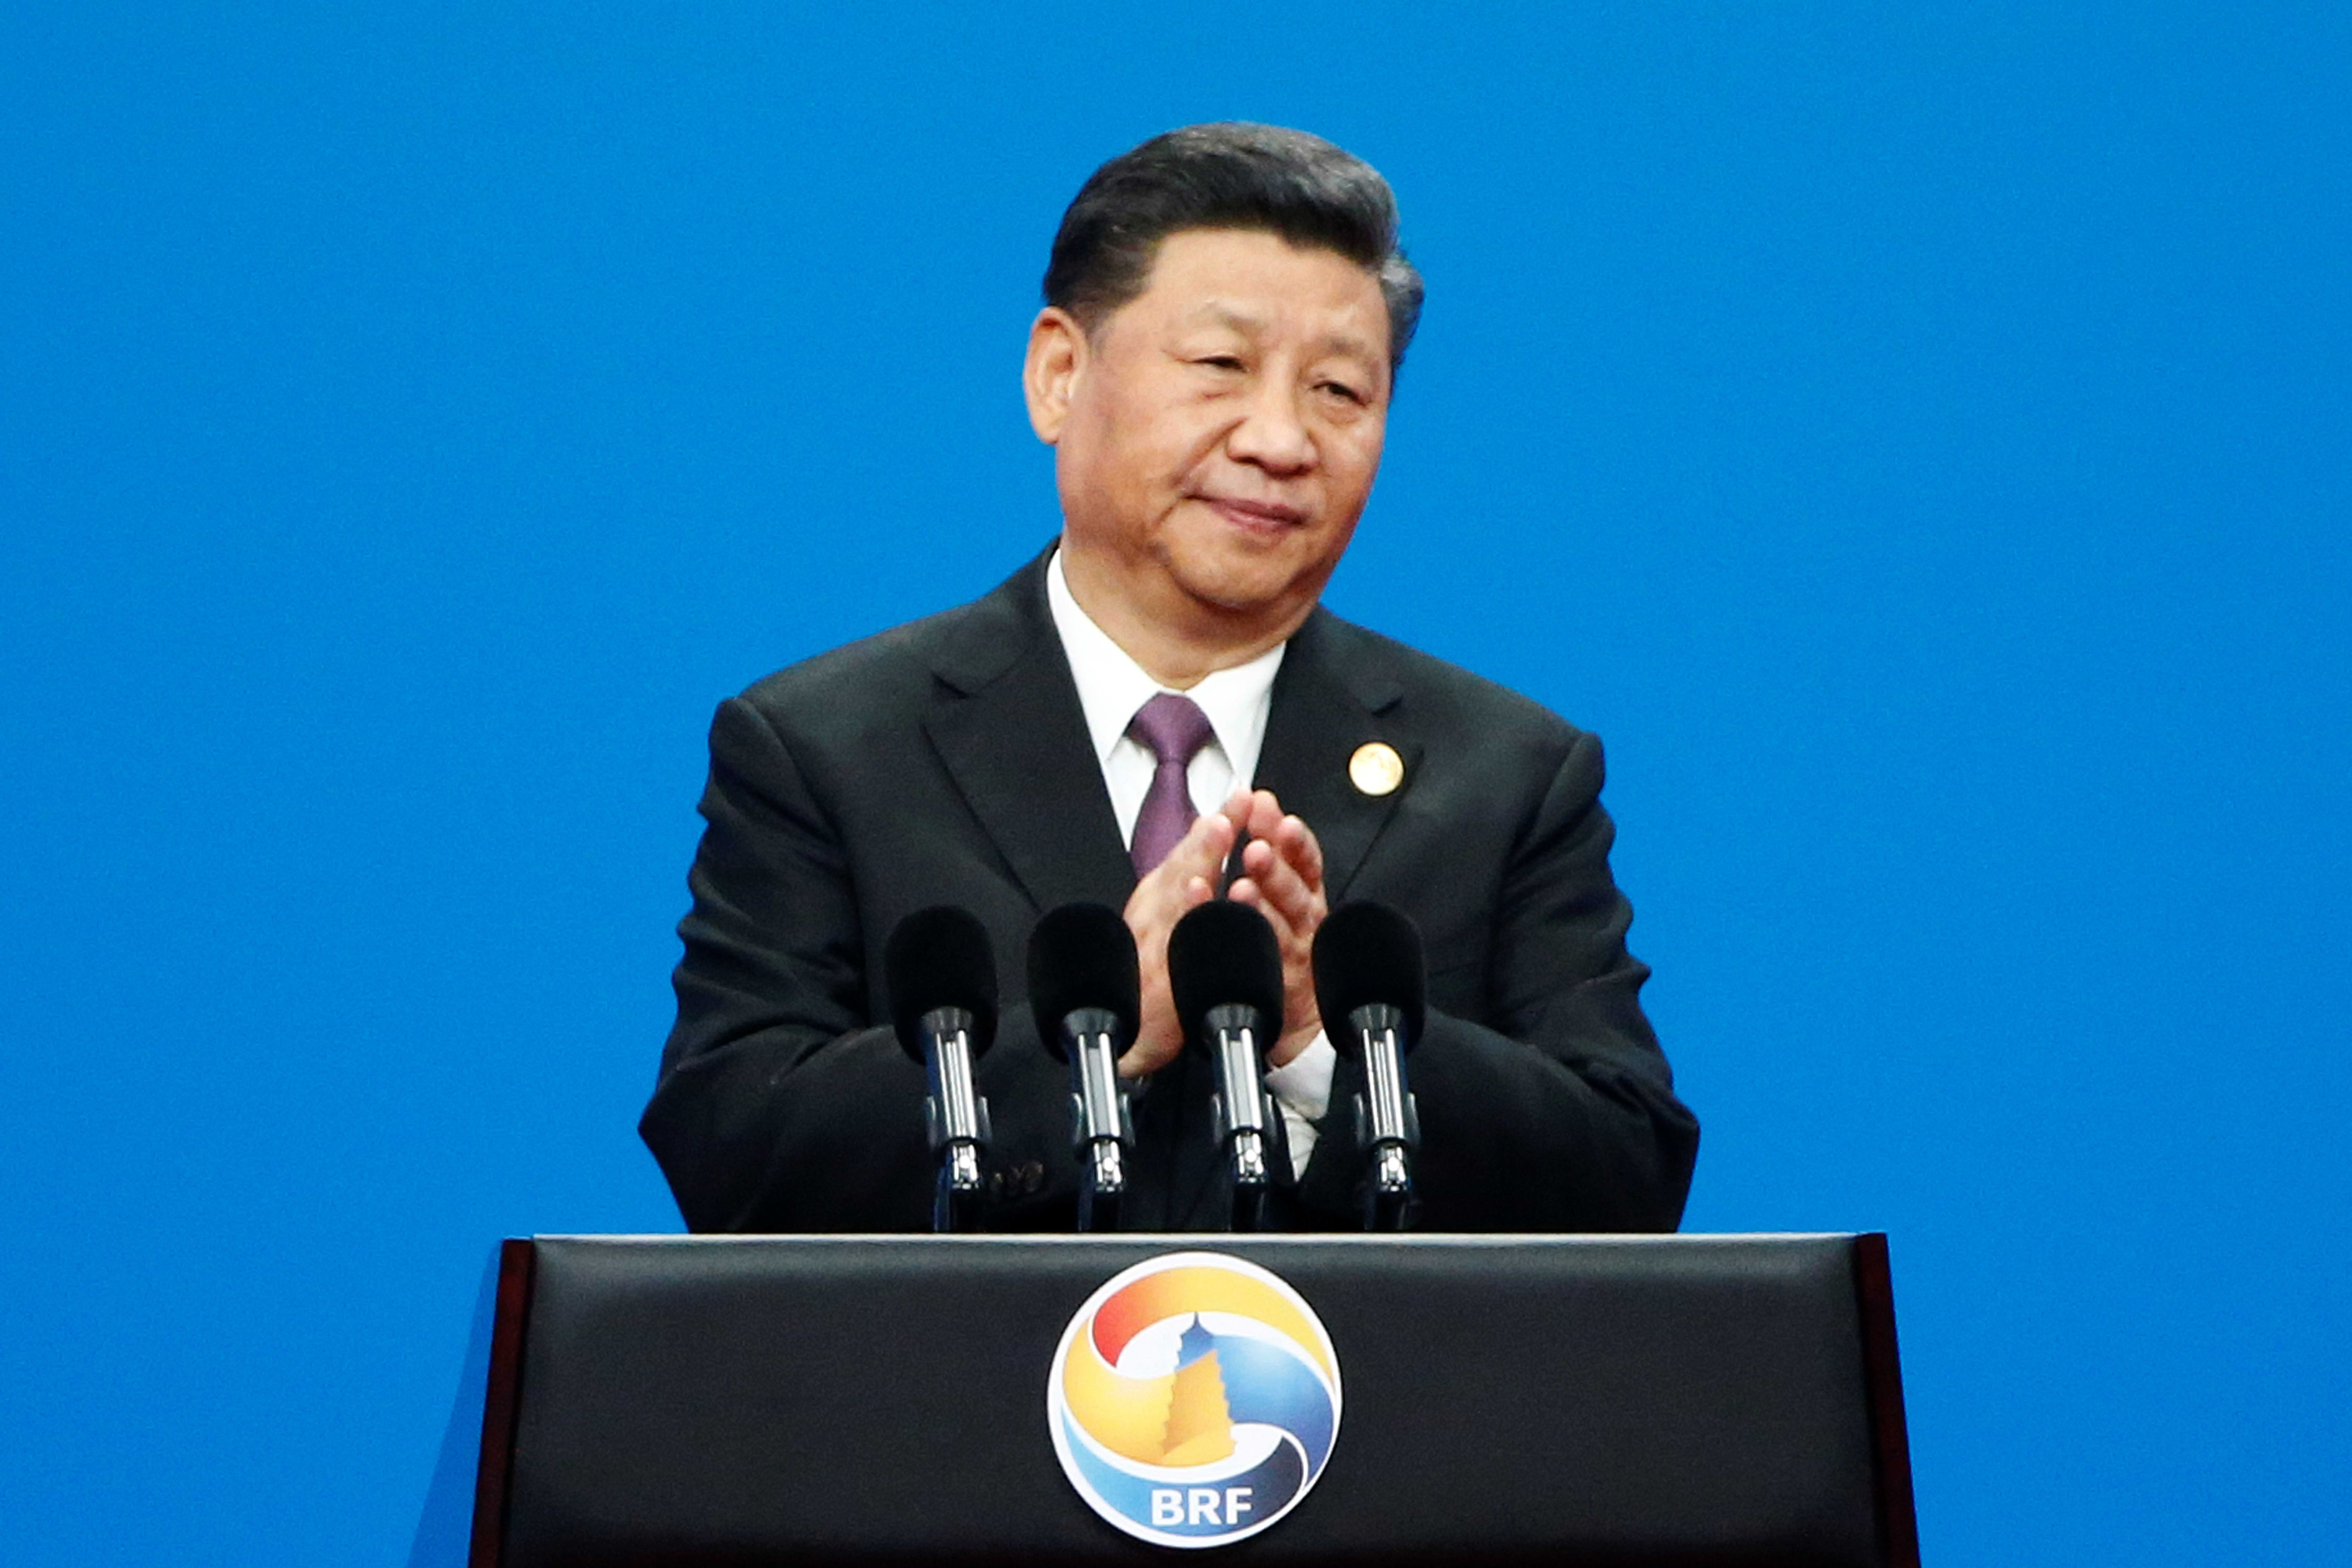 Xi tells world leaders he's committed to reforming China, but provides few details